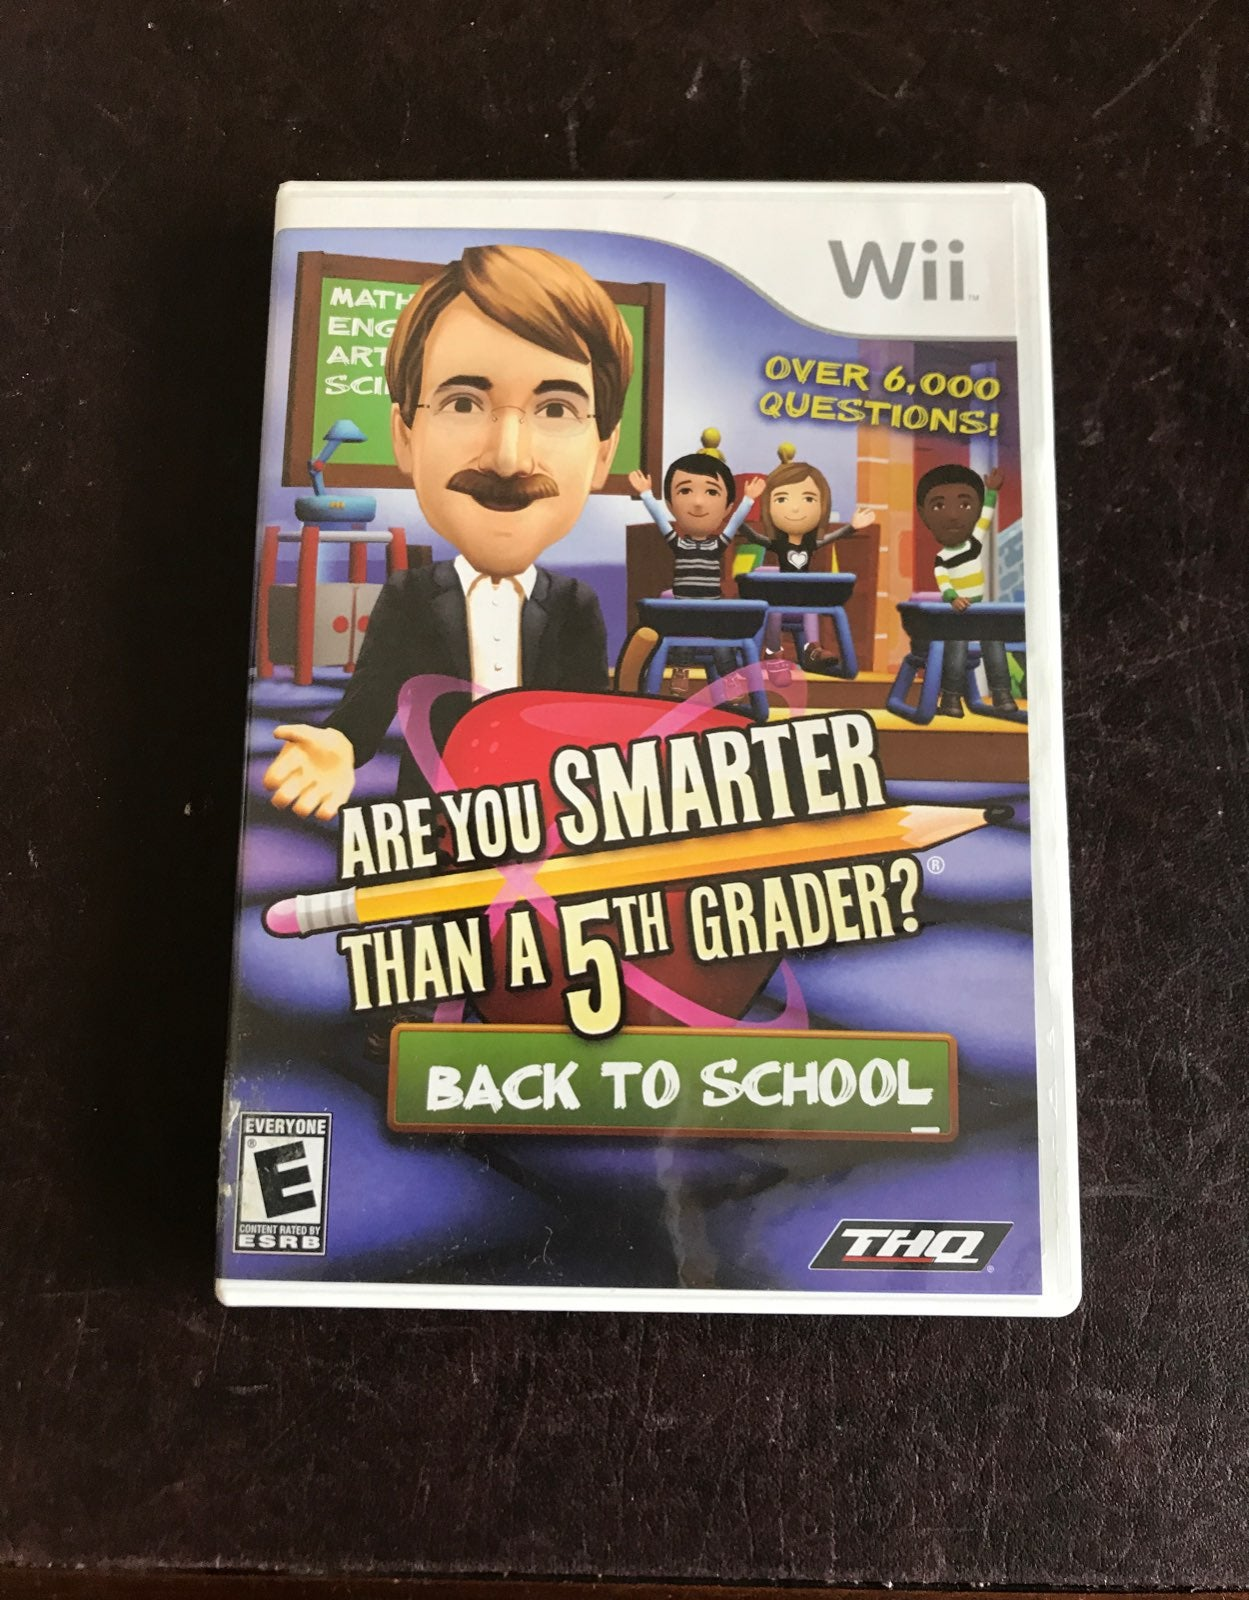 Wii Are you smarter than a 5th Grader?